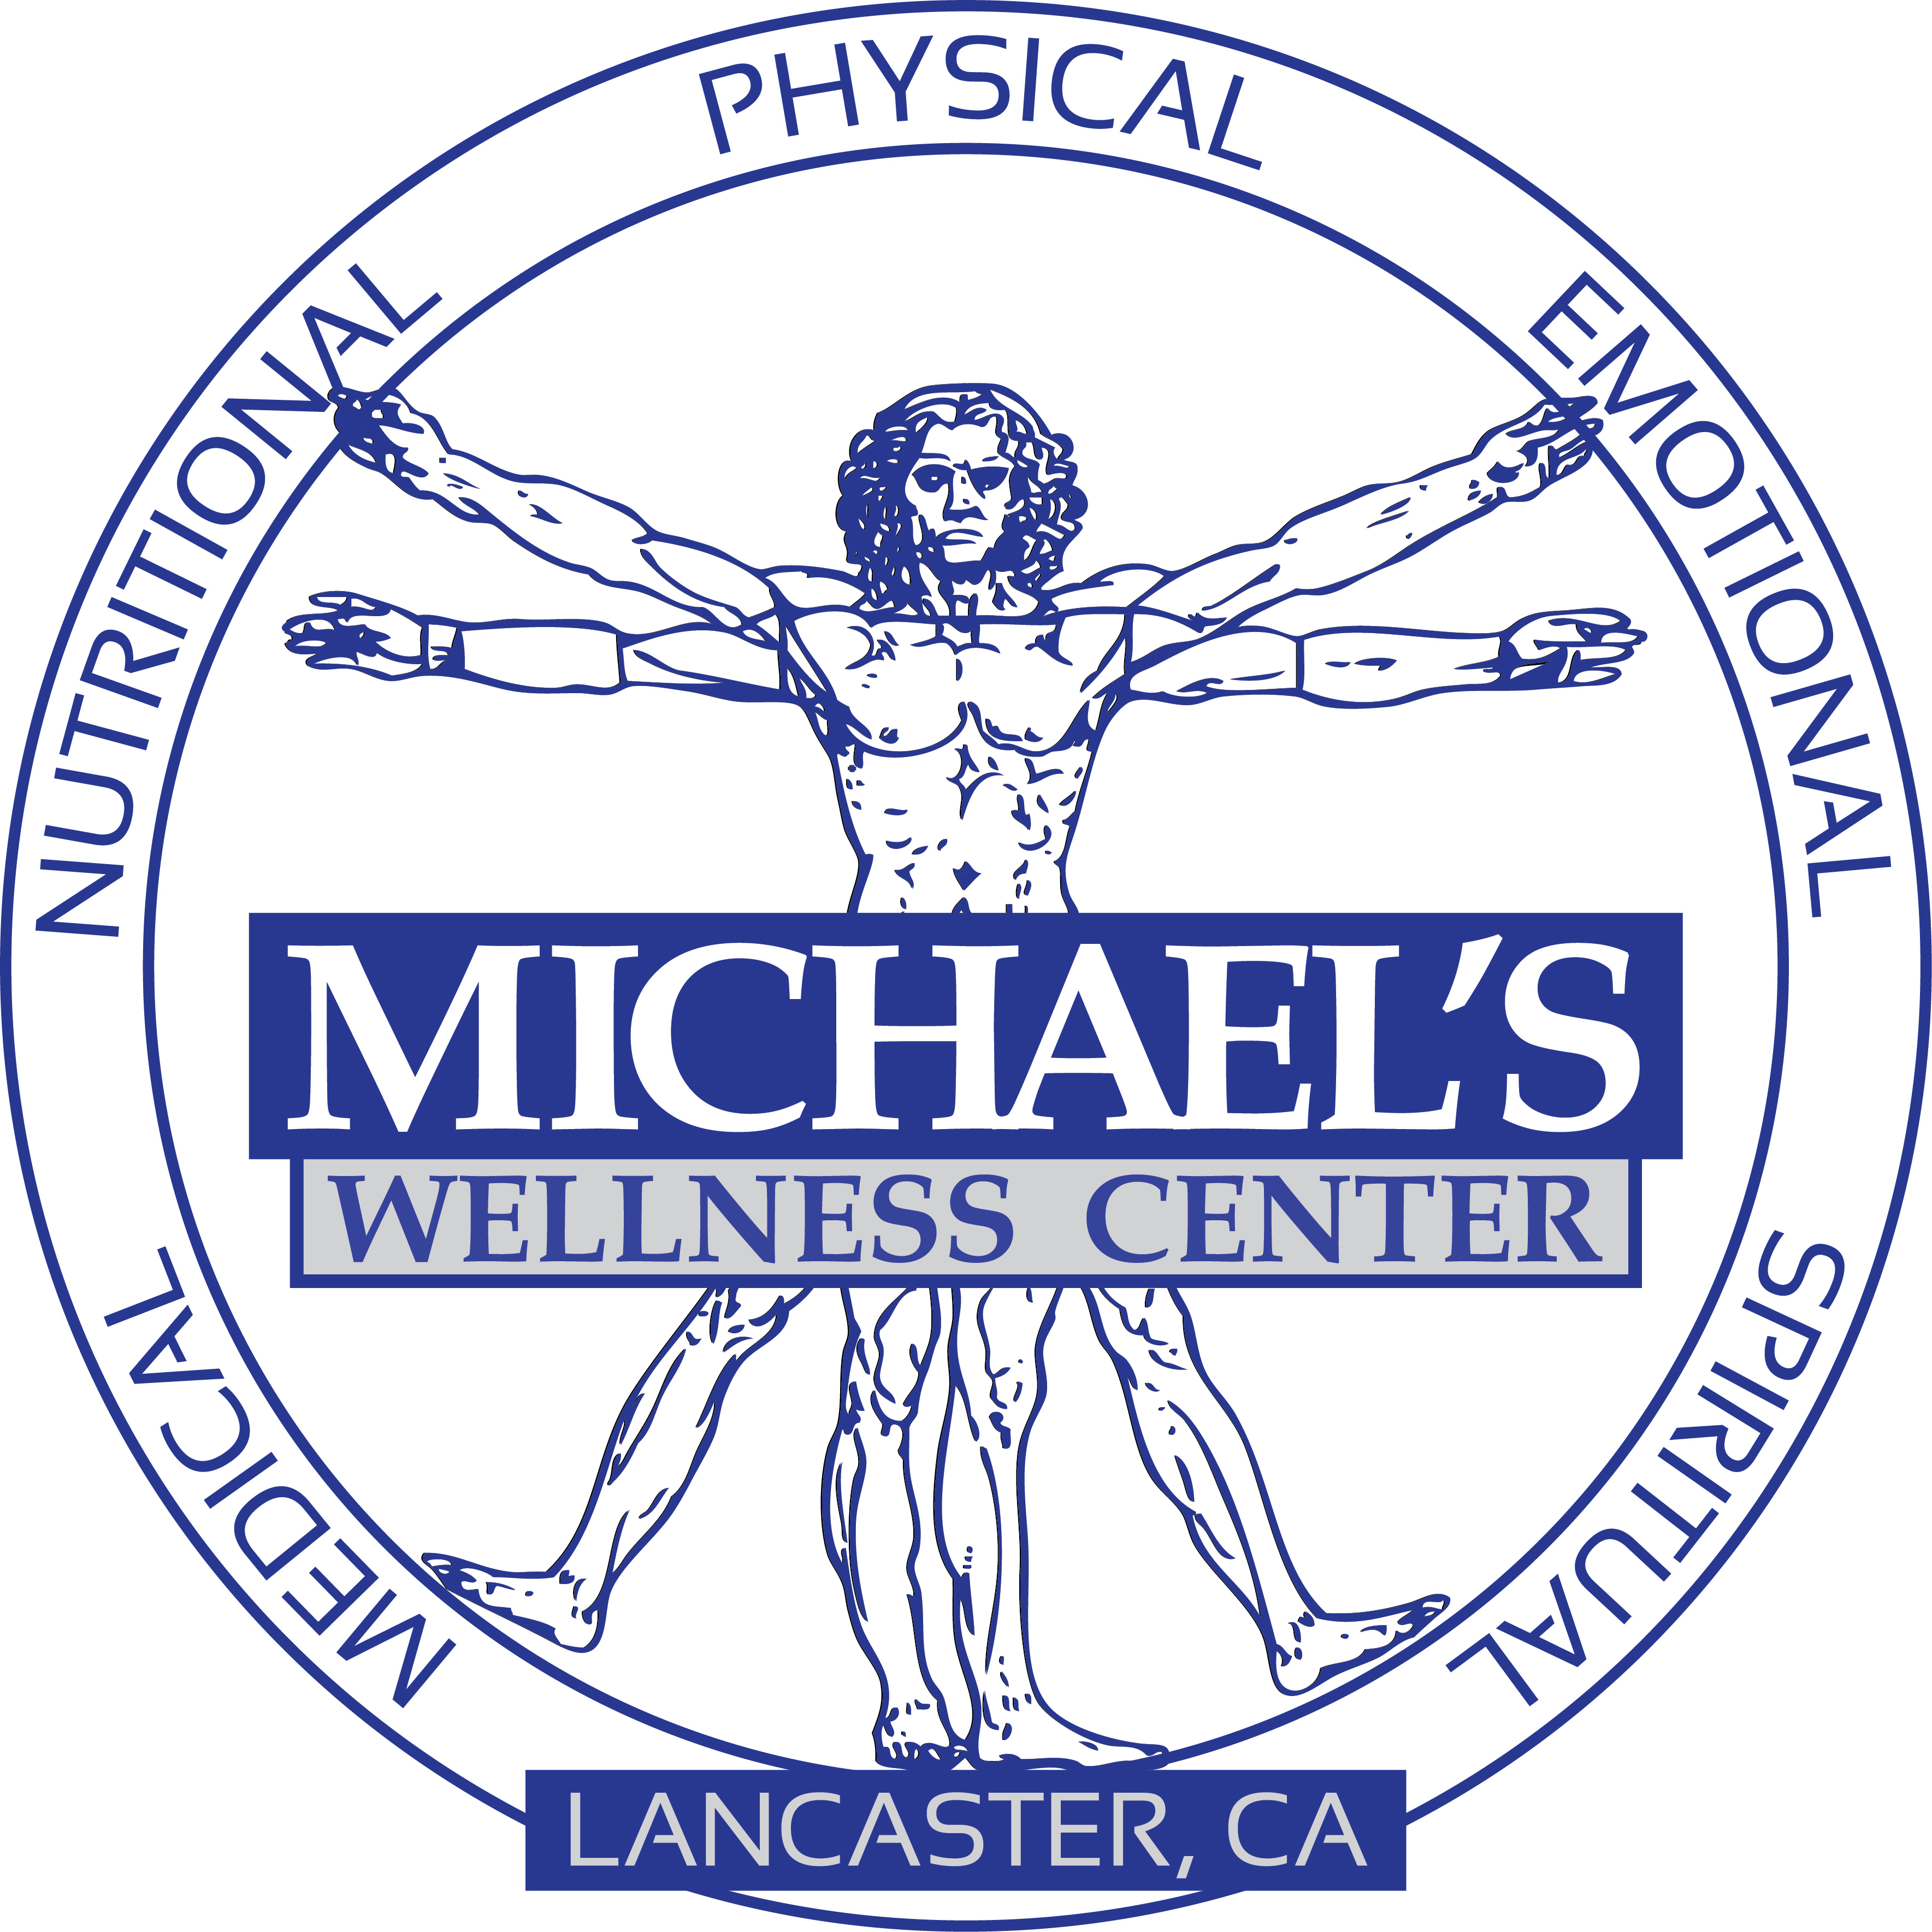 Michael's Wellness Center - Lancaster, CA - Health Clubs & Gyms